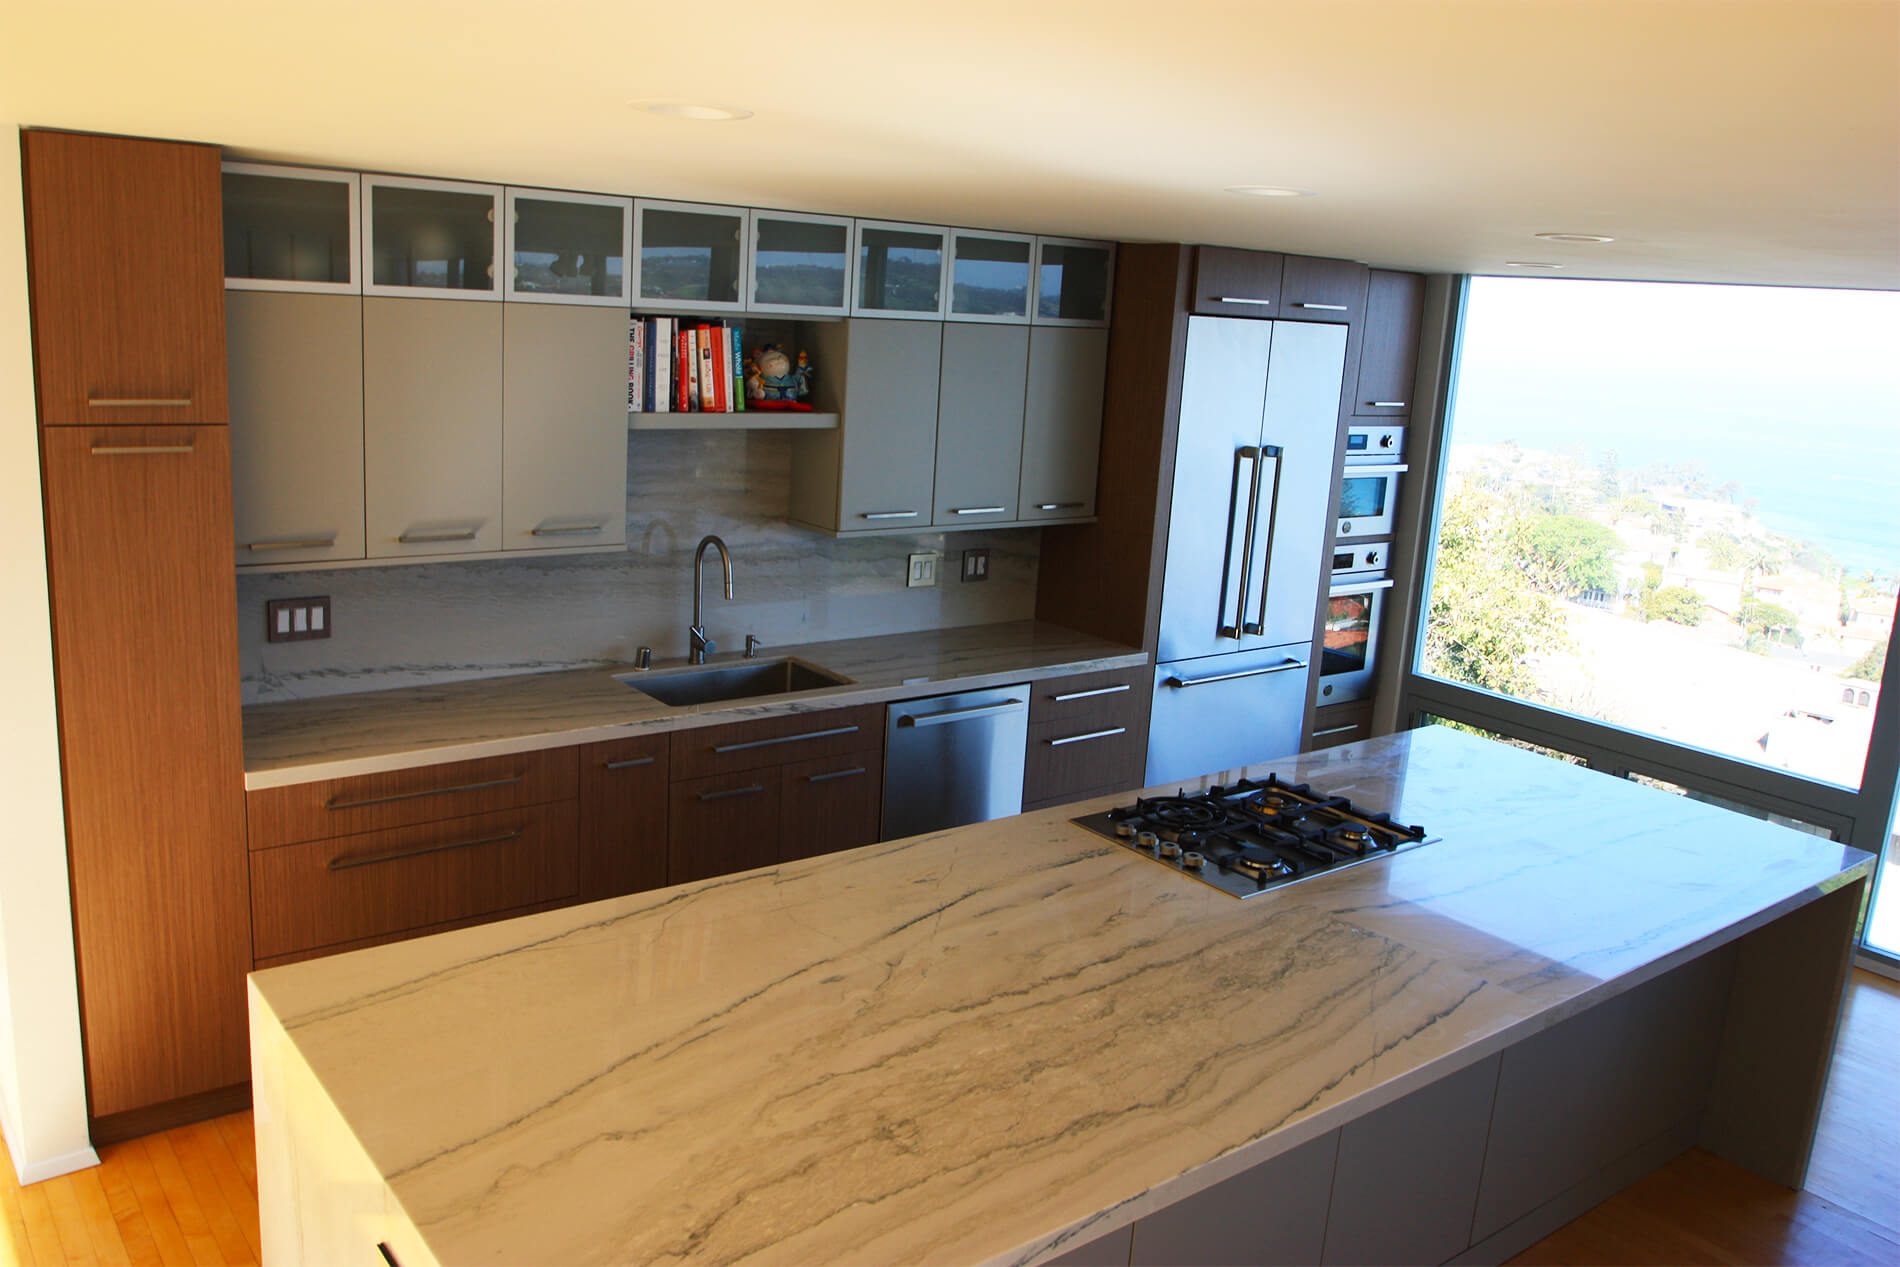 Remodeling Services | San Diego | Kitchens, Bathrooms ...